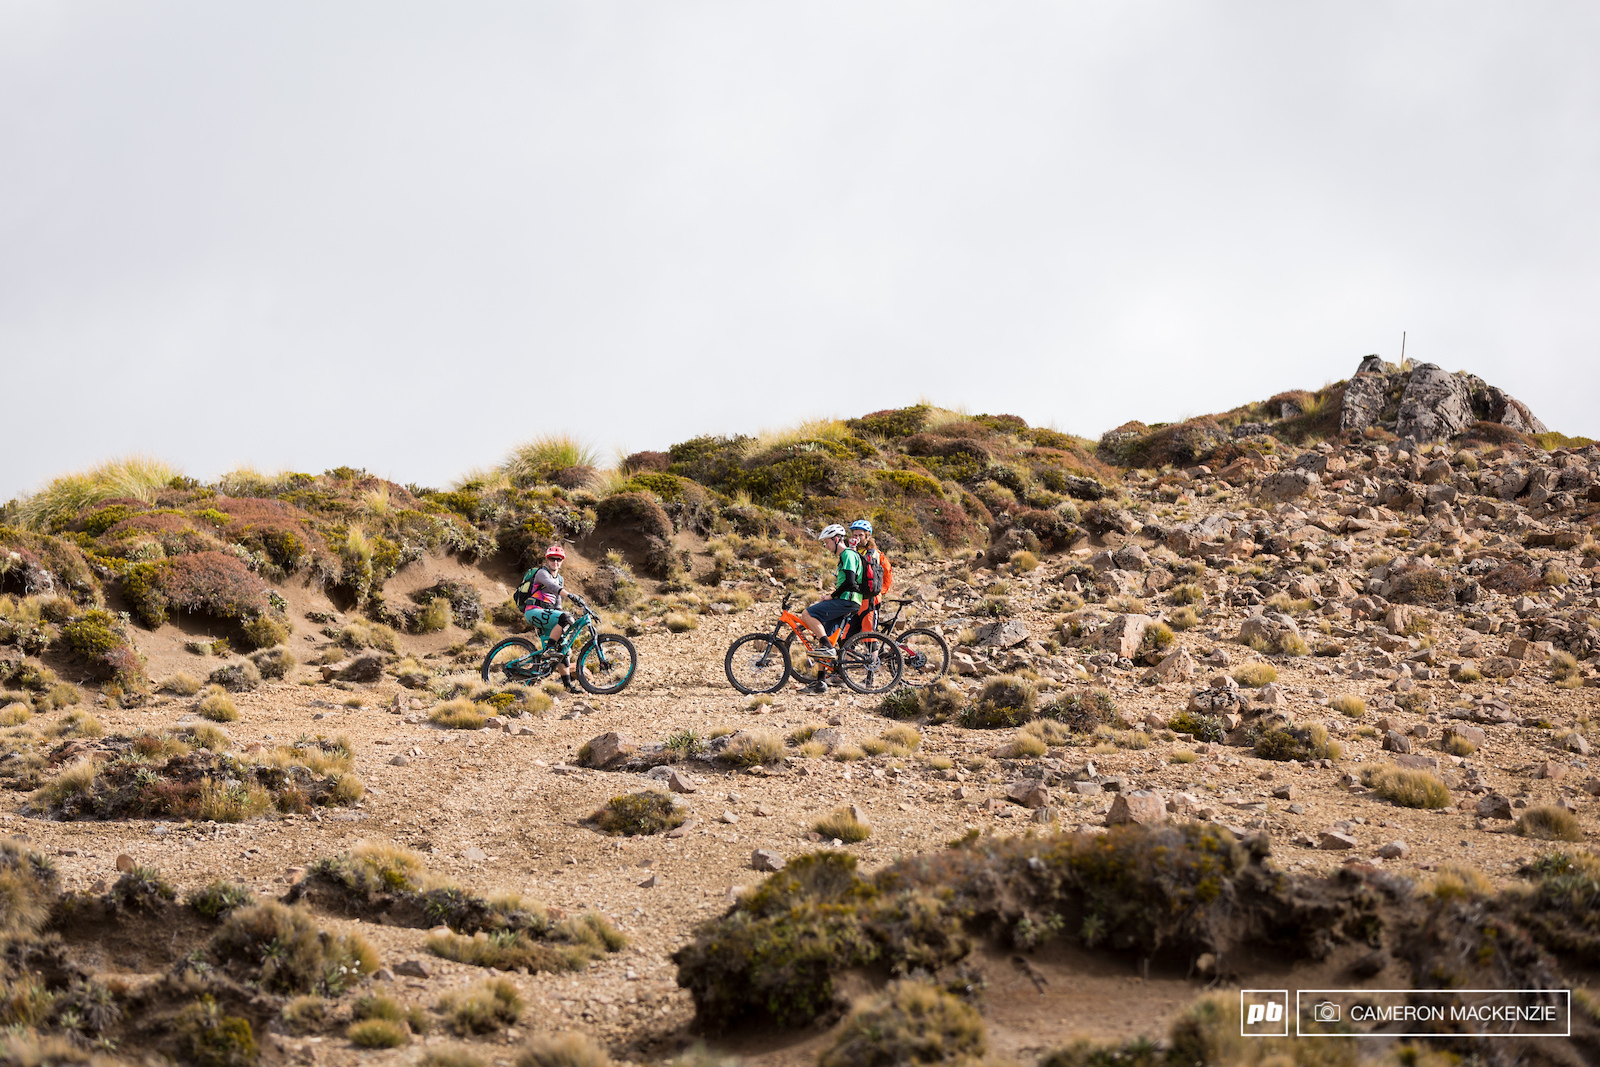 Images from the JustMTB Native North Tour